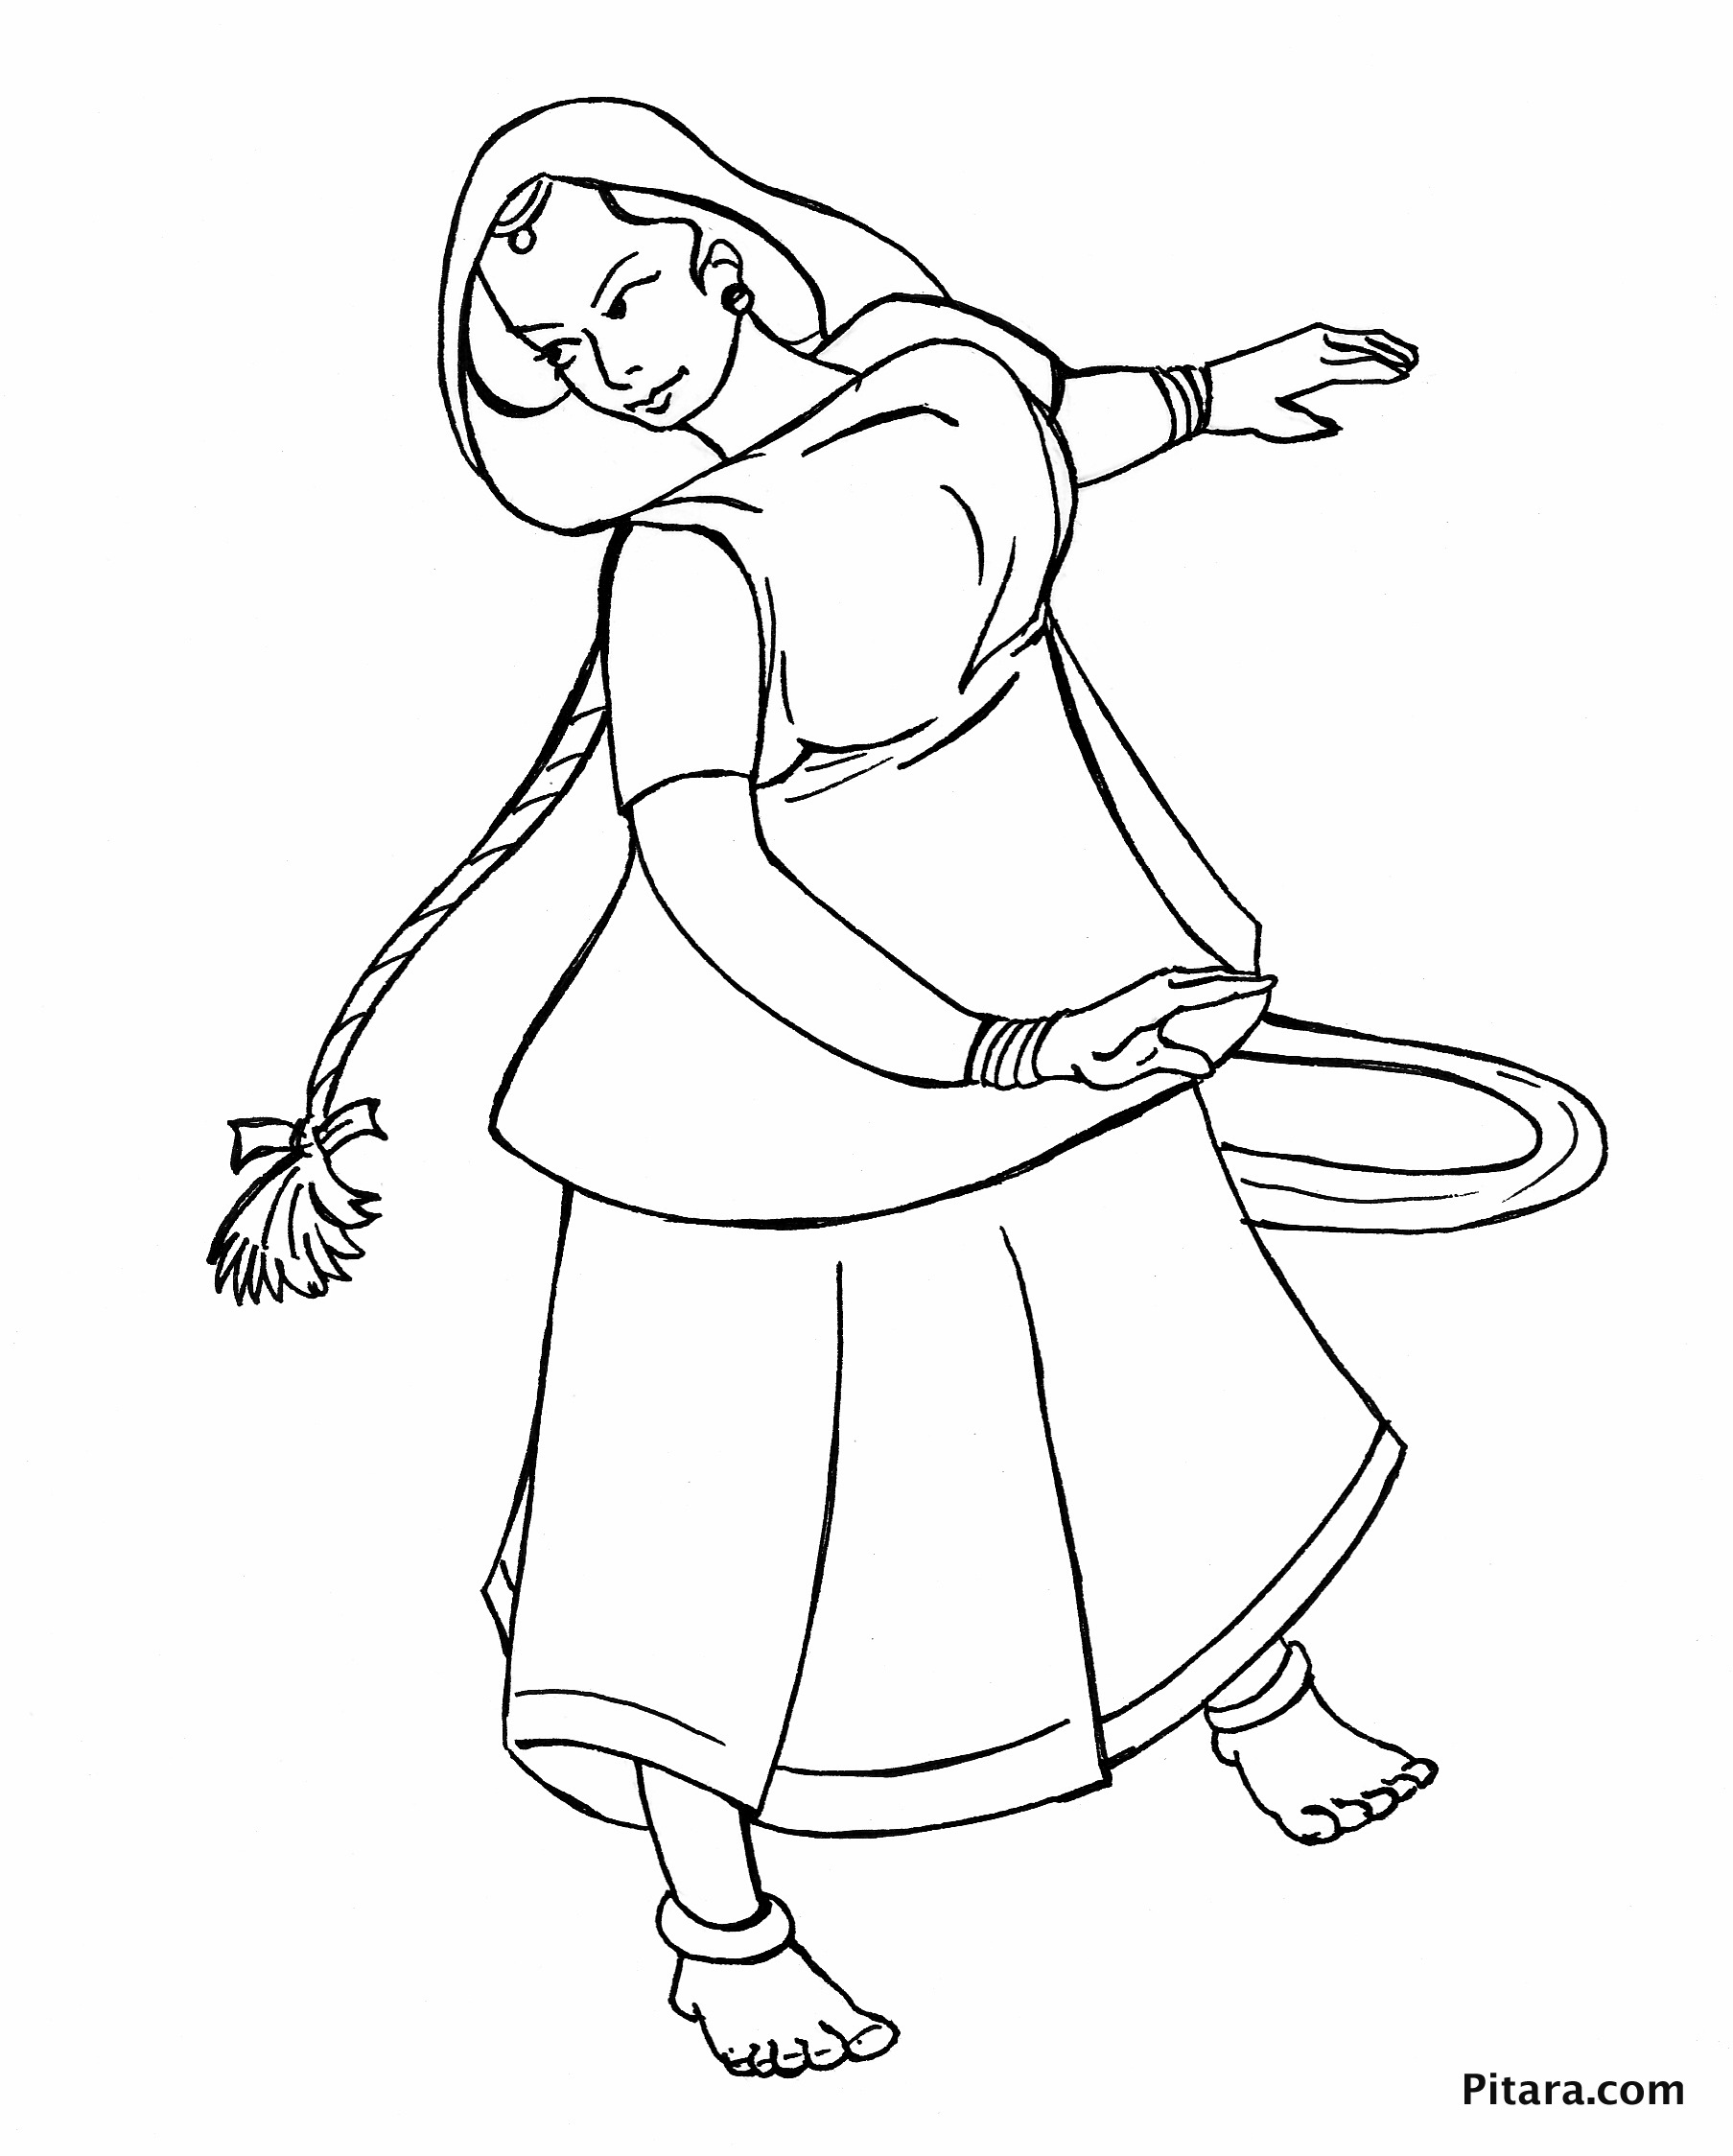 1807x2248 Dancing Styles Coloring Pages Pitara Kids Network